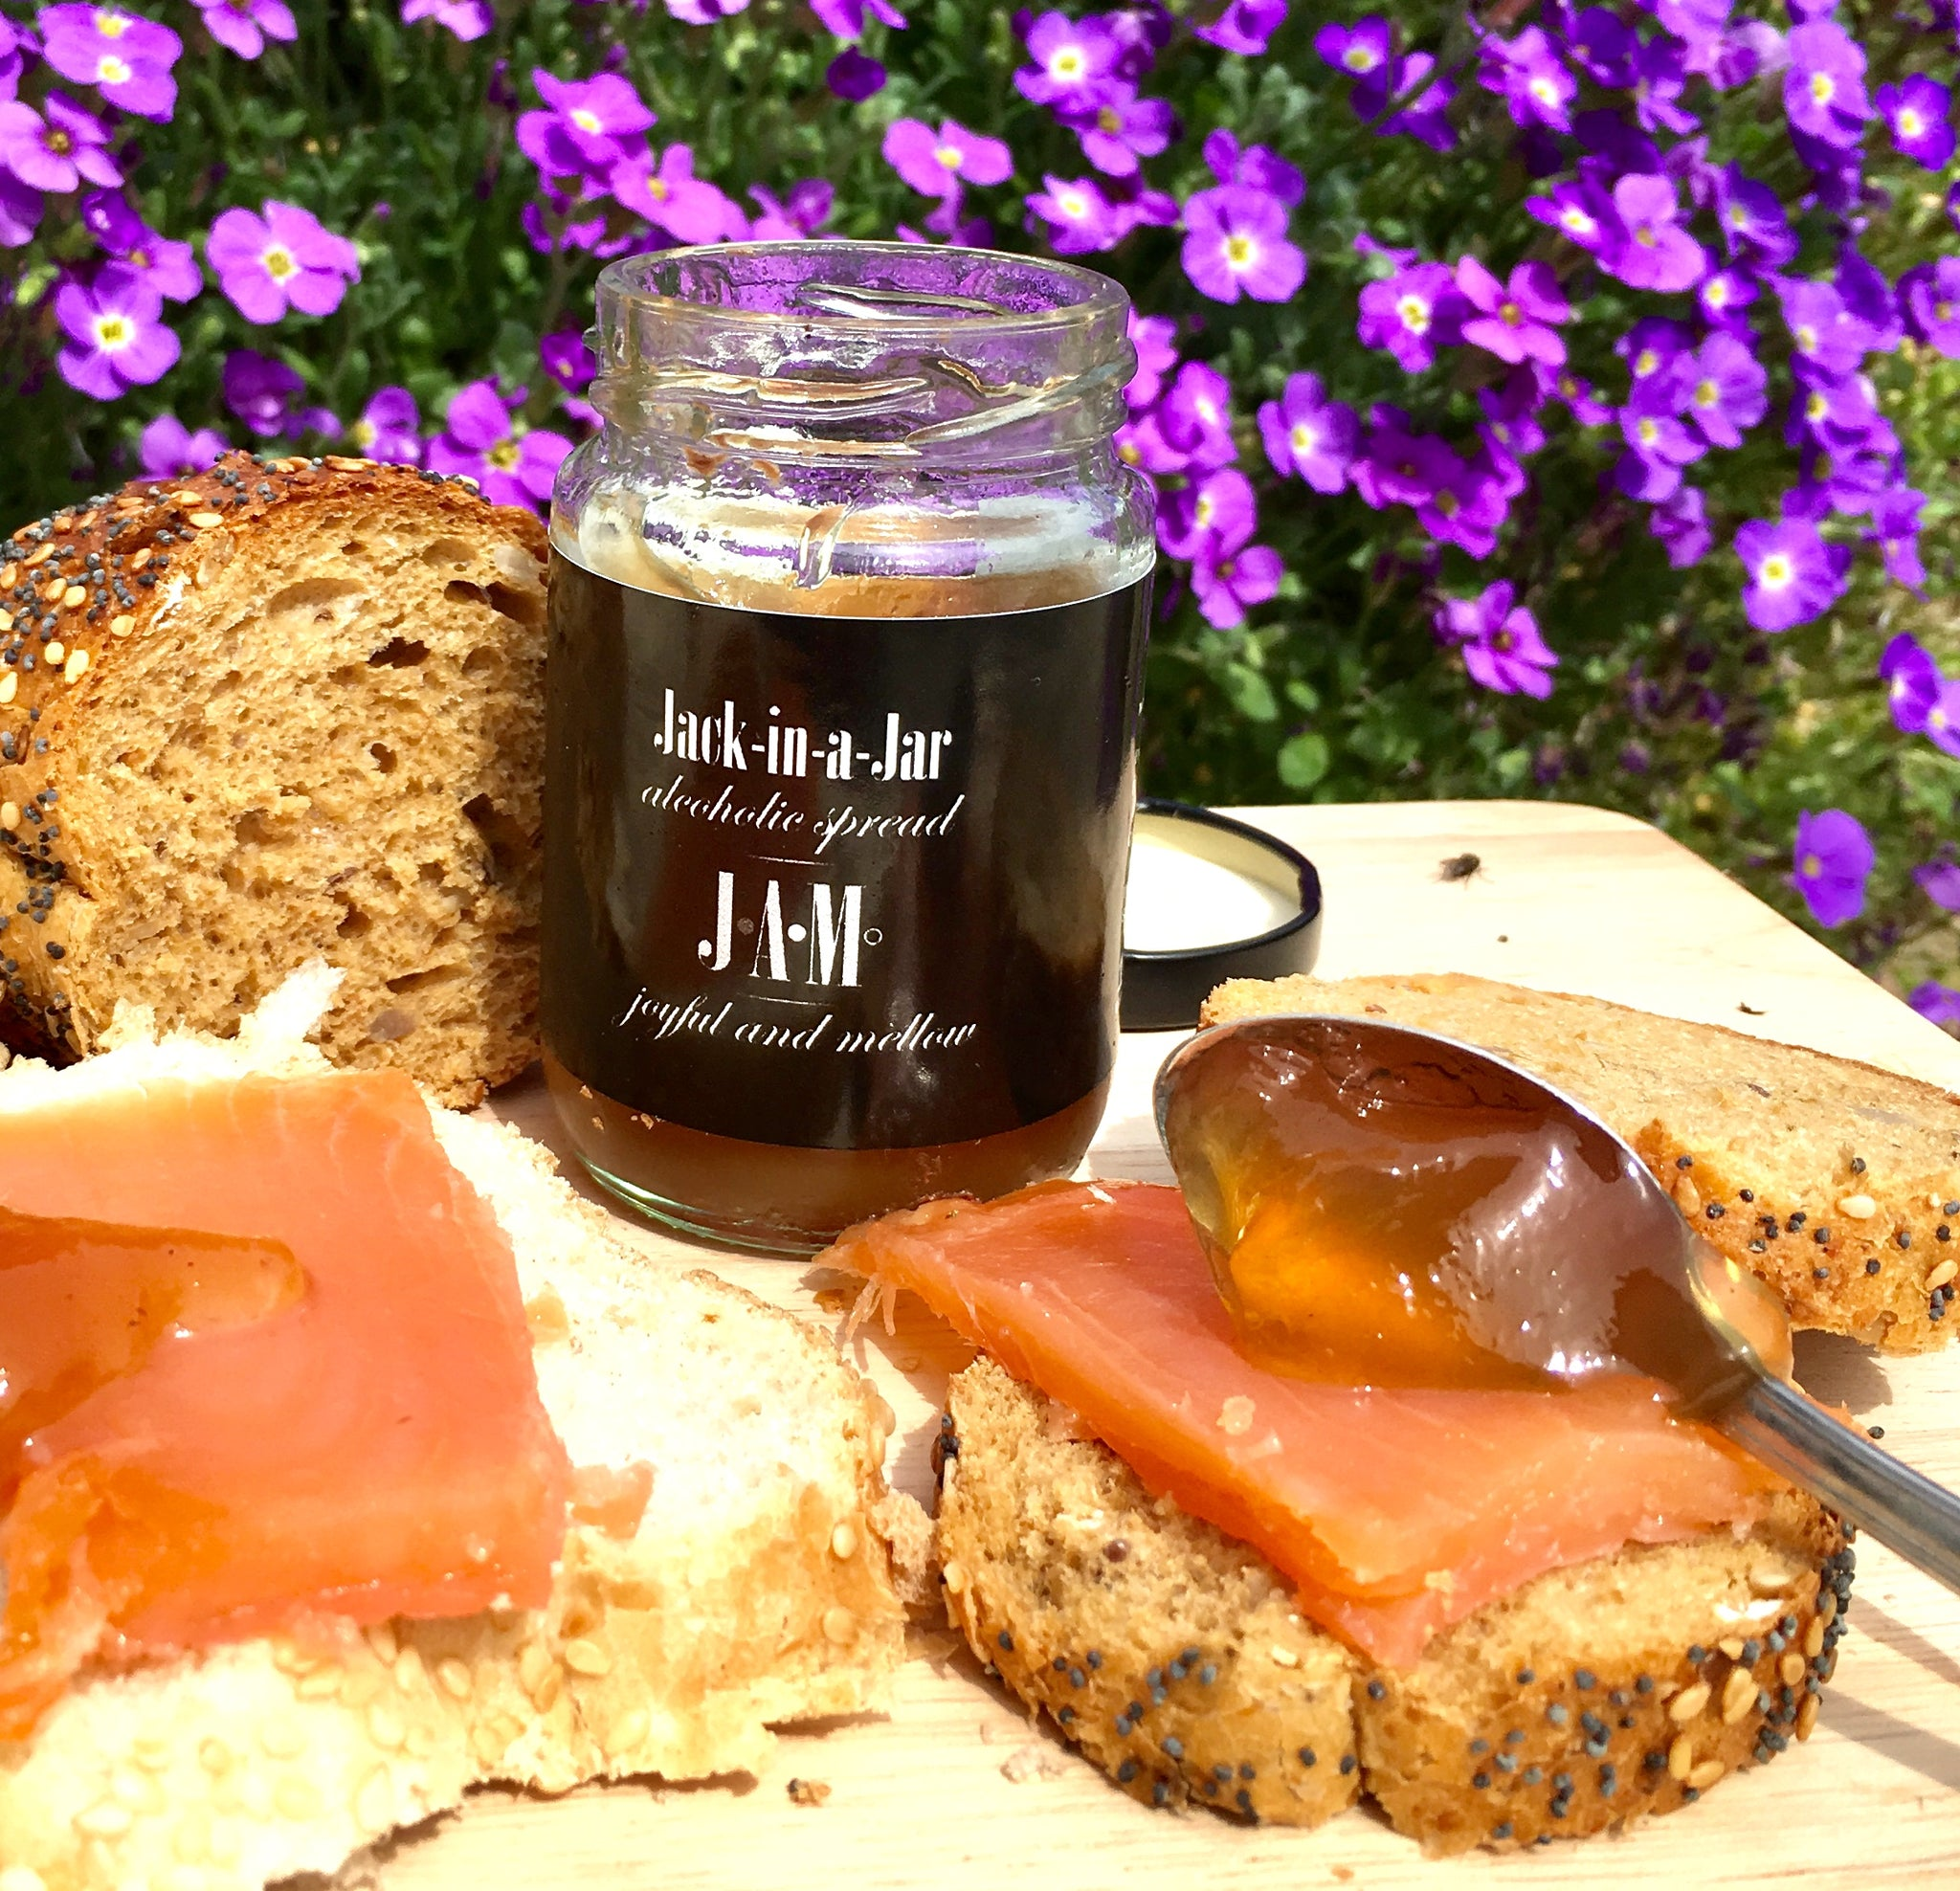 Jack-in-a-Jar Alcoholic Spread 100g or 200g - 60.8% Bourbon -15.5% ABV